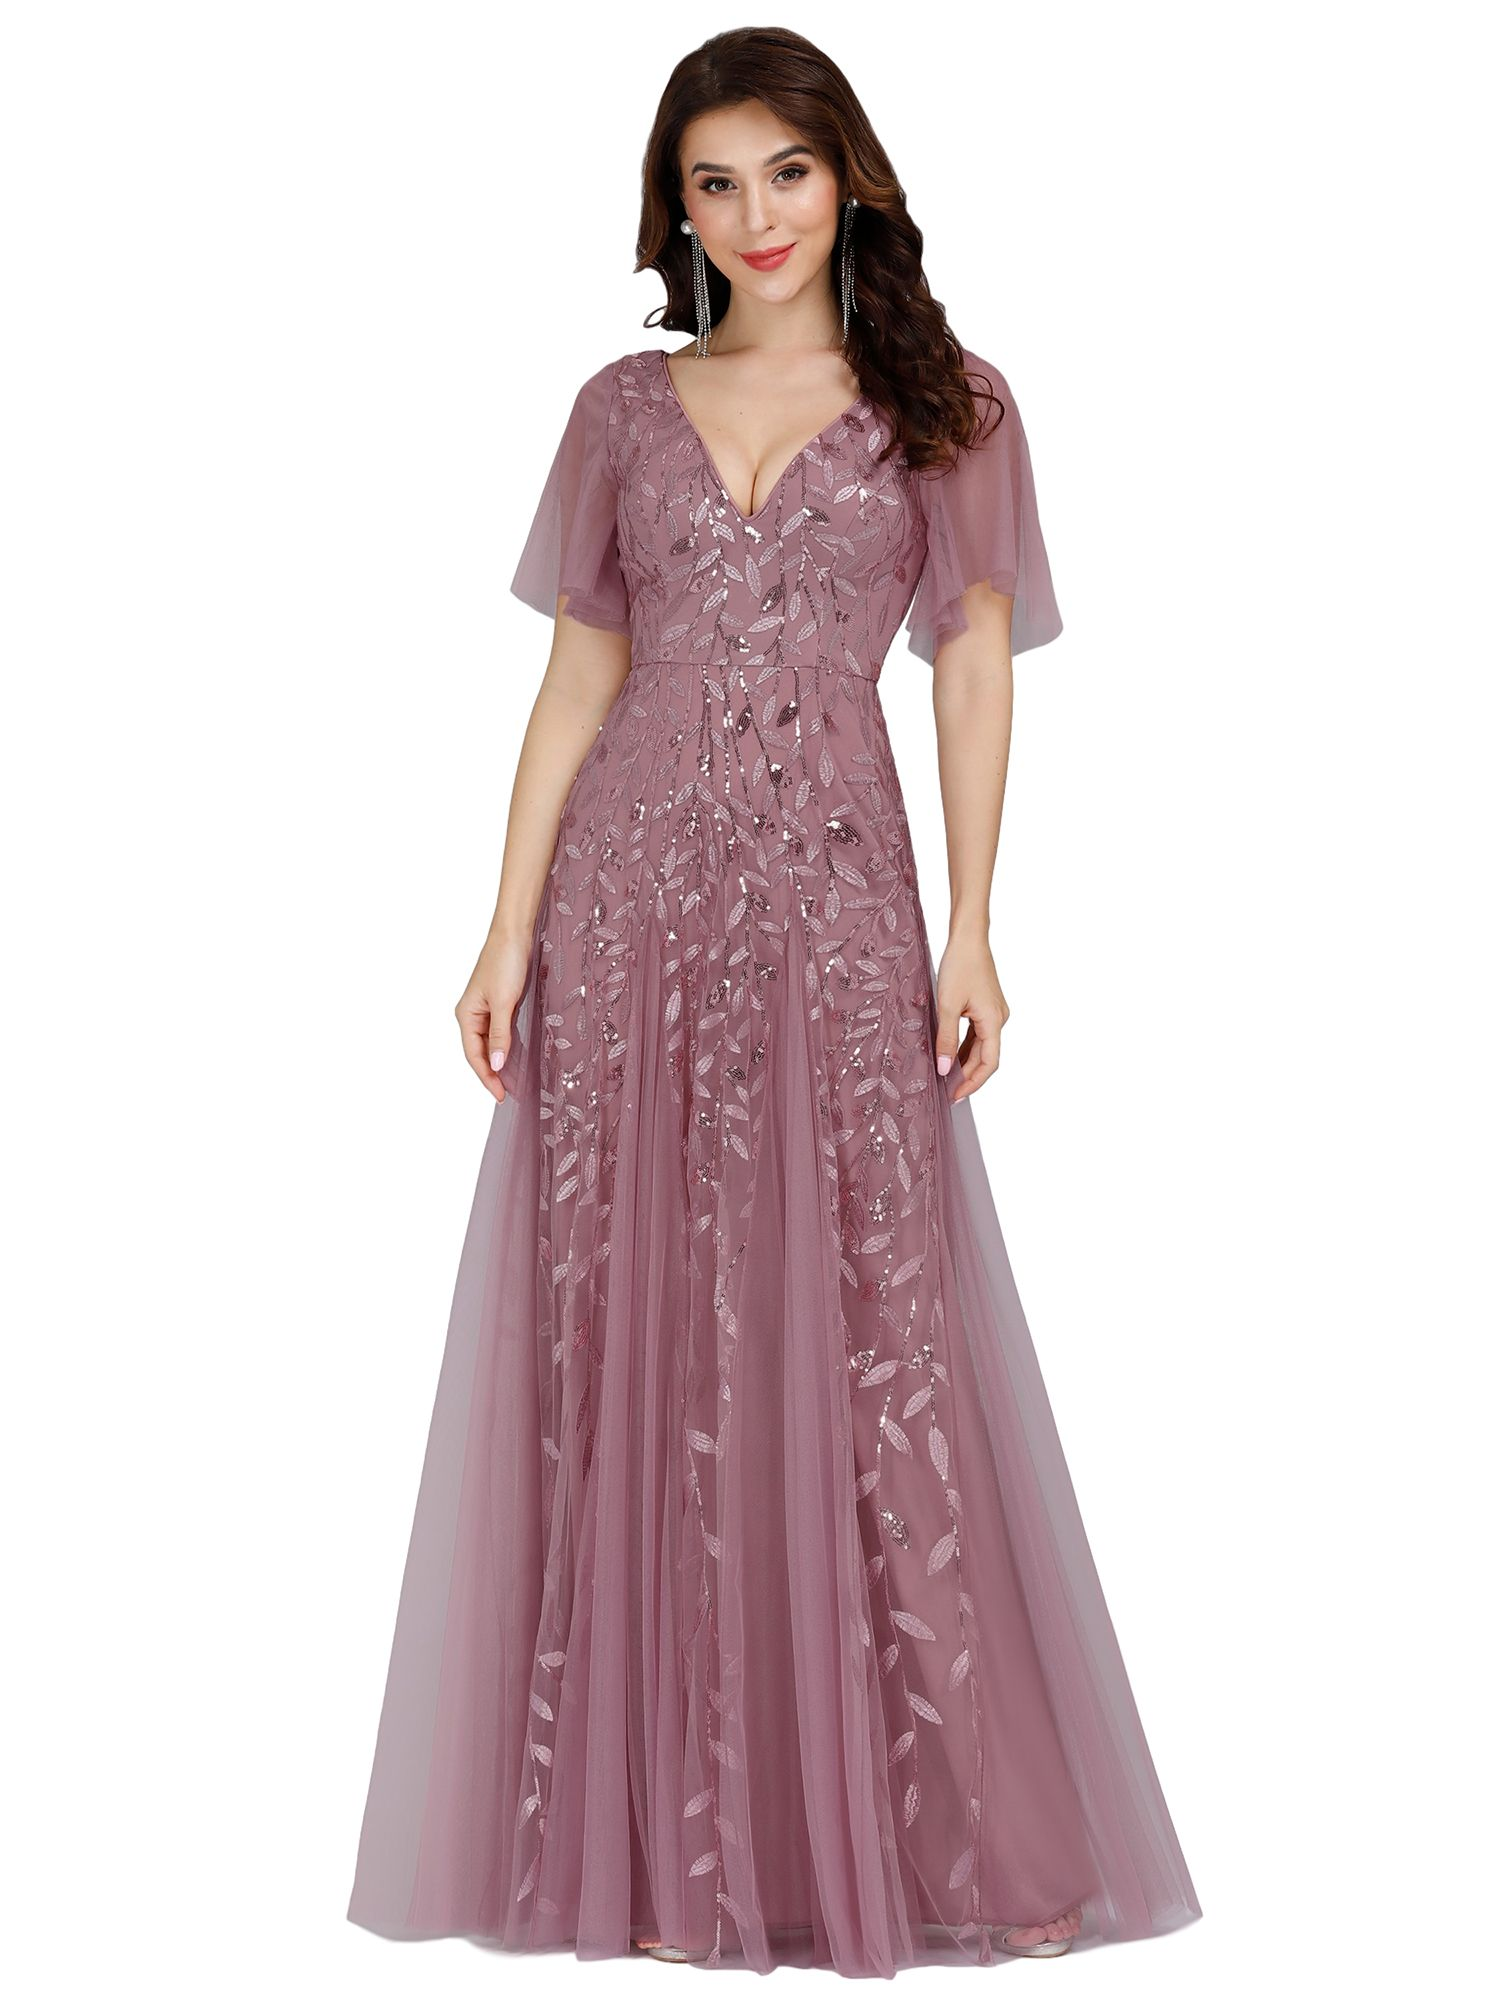 Ever Pretty Ever Pretty Women S V Neck Embroidery Short Sleeve Wedding Party Evening Dress 00734 Dusty Pink Us4 Walmart Com In 2021 Long Bridesmaid Dresses Pretty Dresses Beautiful Evening Dresses [ 2000 x 1500 Pixel ]